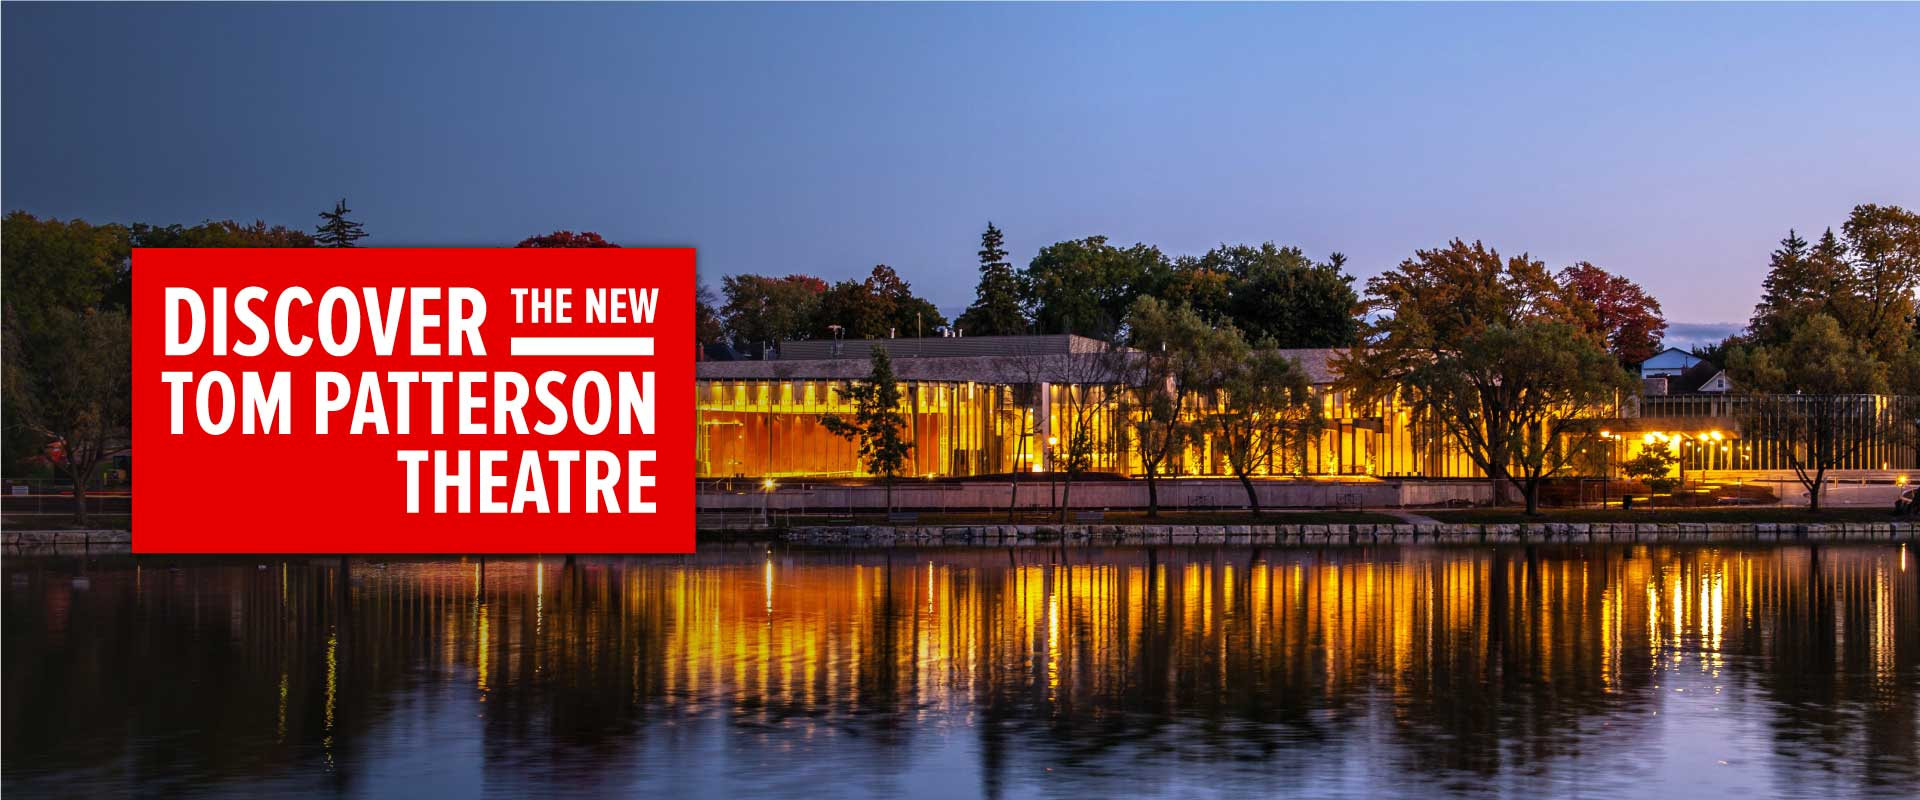 Discover the New Tom Patterson Theatre